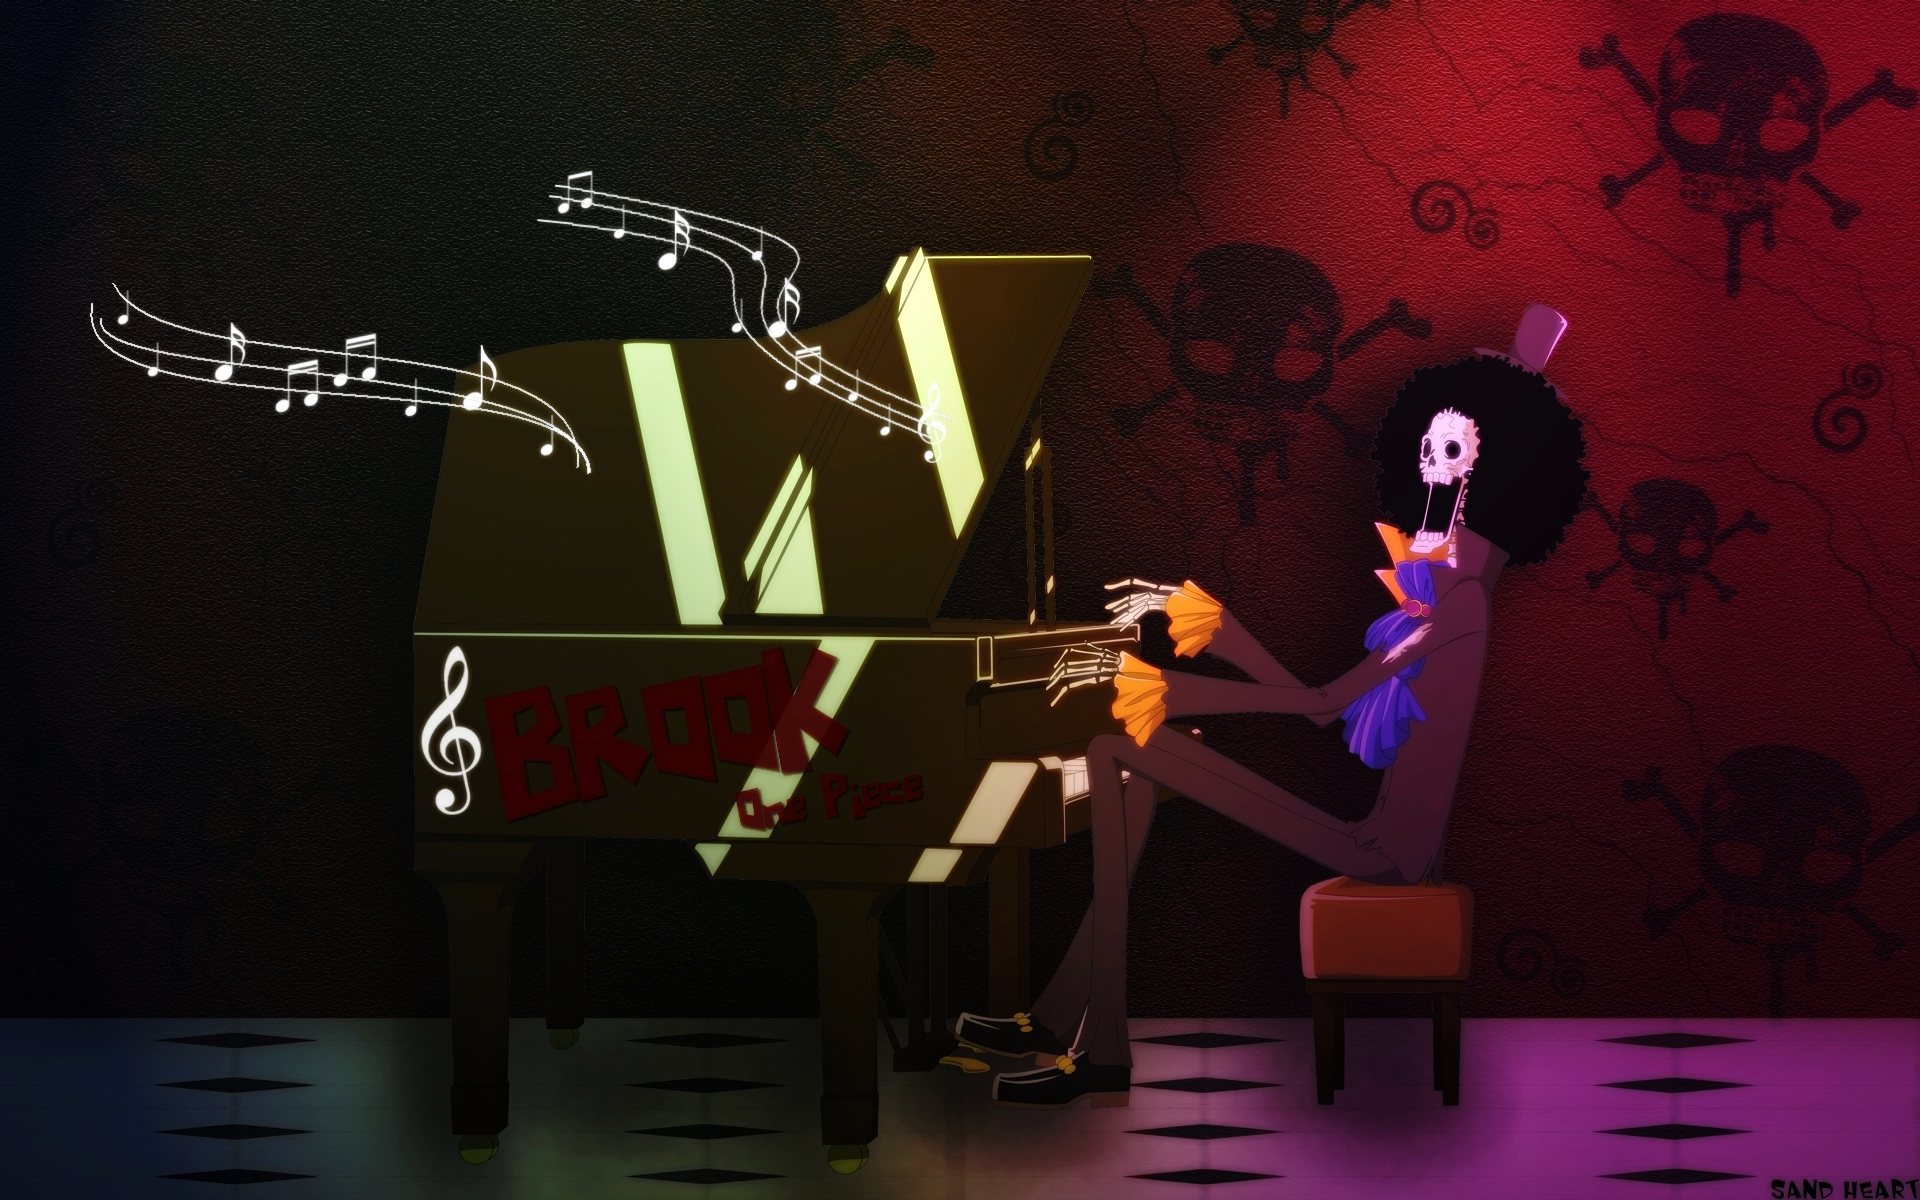 One Piece Wallpaper Brook Playing Piano Minitokyo